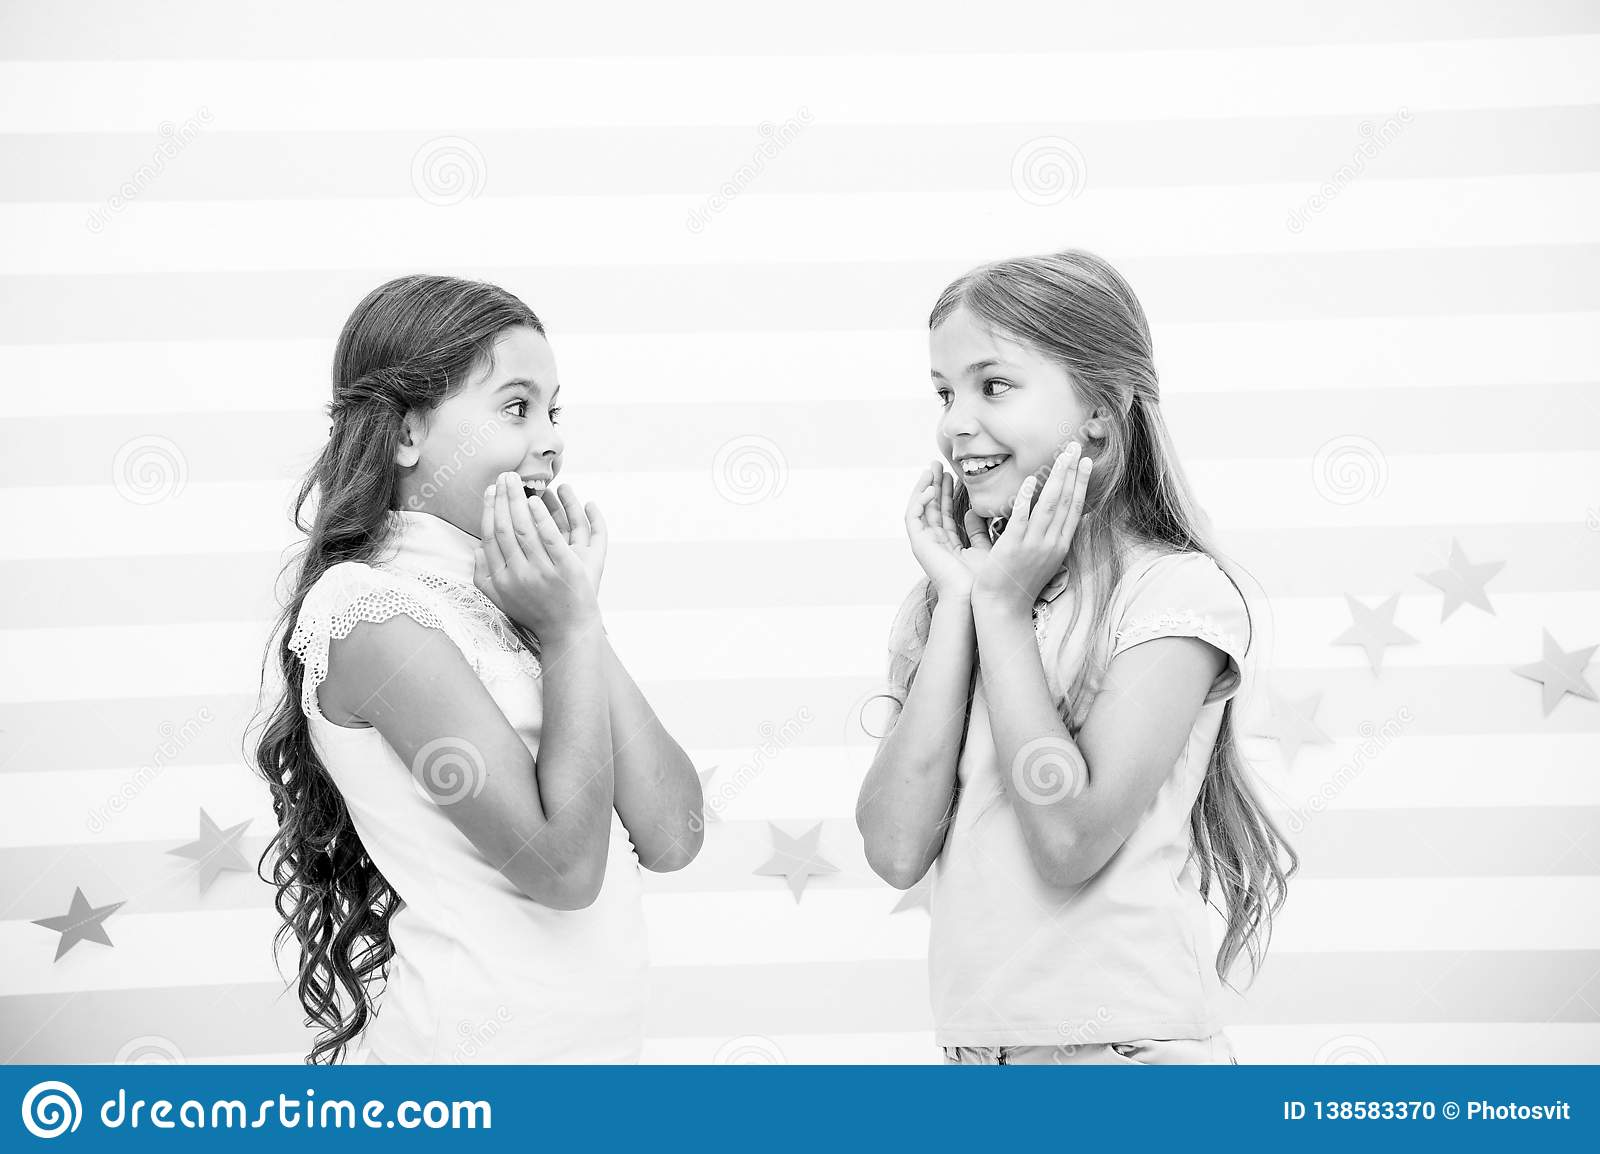 The Surprising News About Childrens >> Amazing Surprising News Girls Excited Expression Girls Kids Just